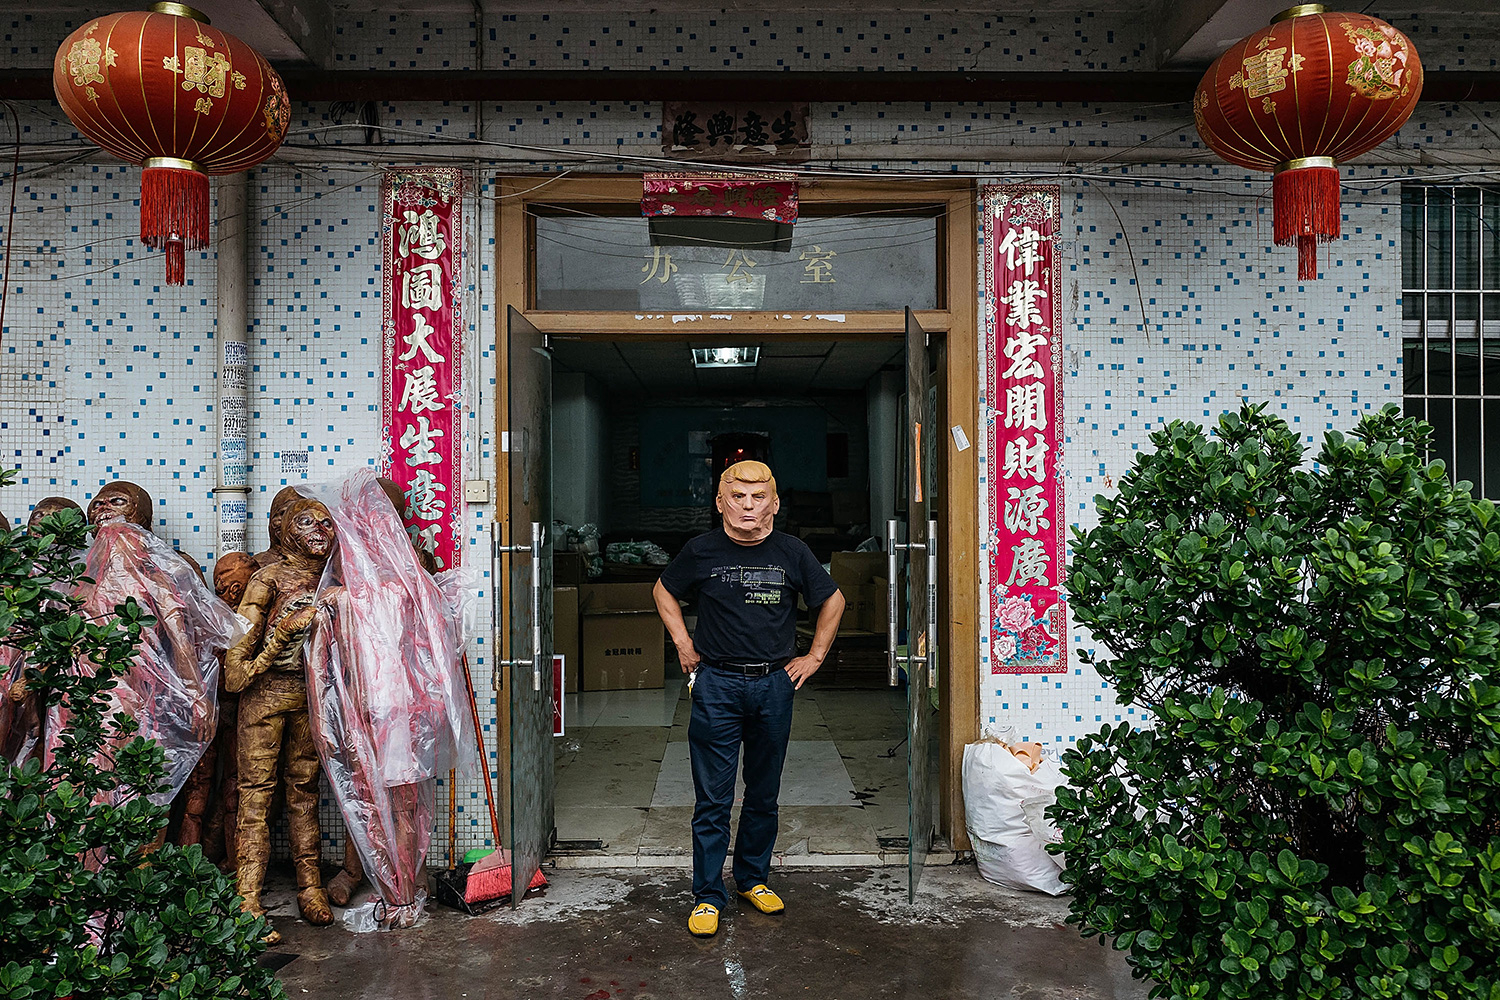 Anthony Kwan—Getty Images An employee wearing a mask of Donald Trump poses for a photograph at the Shenzhen Lanbingcai Latex Crafts Factory, October 18, 2016. The factory produces costumes and masks, including small-scale production of Donald Trump masks for local distribution within mainland China.